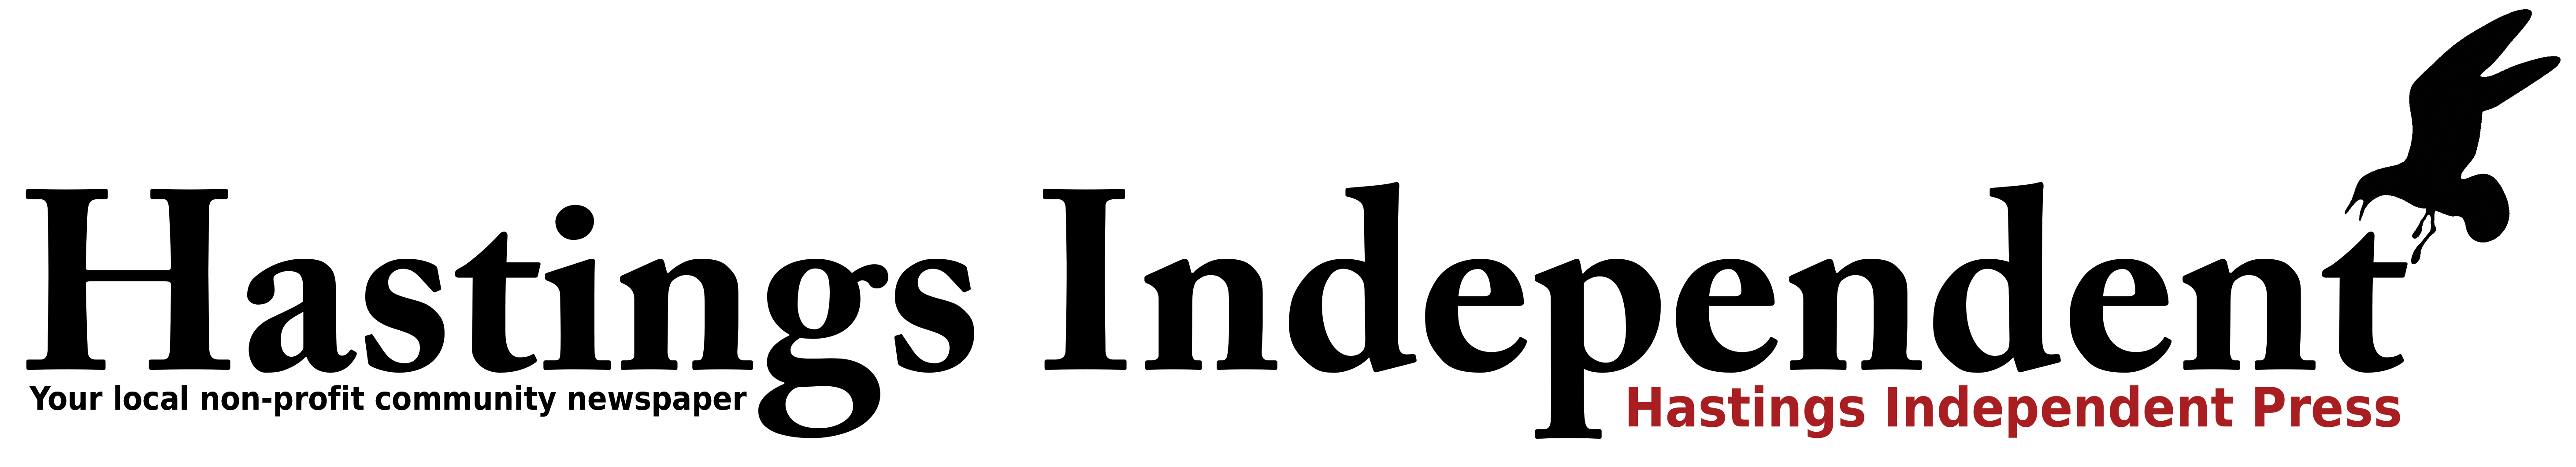 Hastings Independent Press